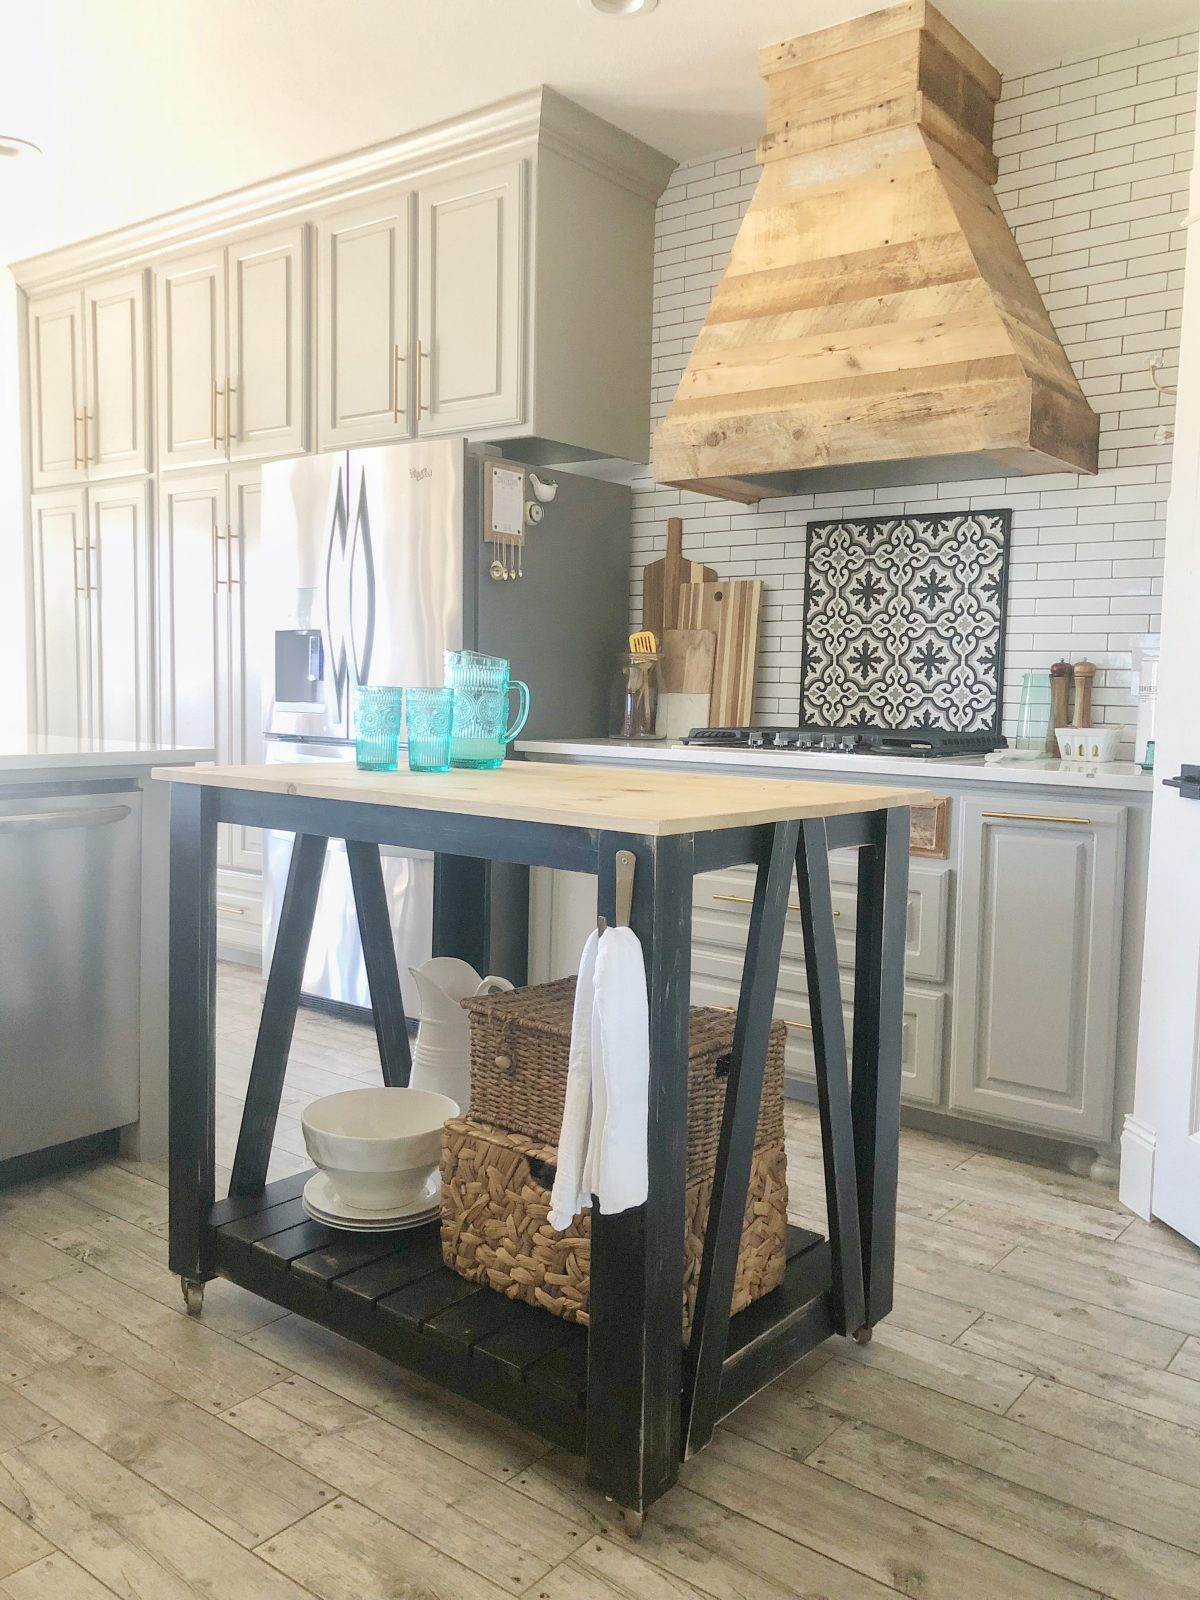 DIY Modern Farmhouse Kitchen Island Cart - Shanty 2 Chic on kitchen cart with trash can, kitchen islands product, outdoor kitchen carts, kitchen cart with stools, kitchen storage carts, pantry carts, kitchen organizer carts, designer kitchen carts, kitchen cart granite top cart, kitchen carts product, hotel bell carts, kitchen islands from lowe's, study carts, kitchen bar carts, kitchen islands with seating, library carts, kitchen cart with granite top, small kitchen carts,